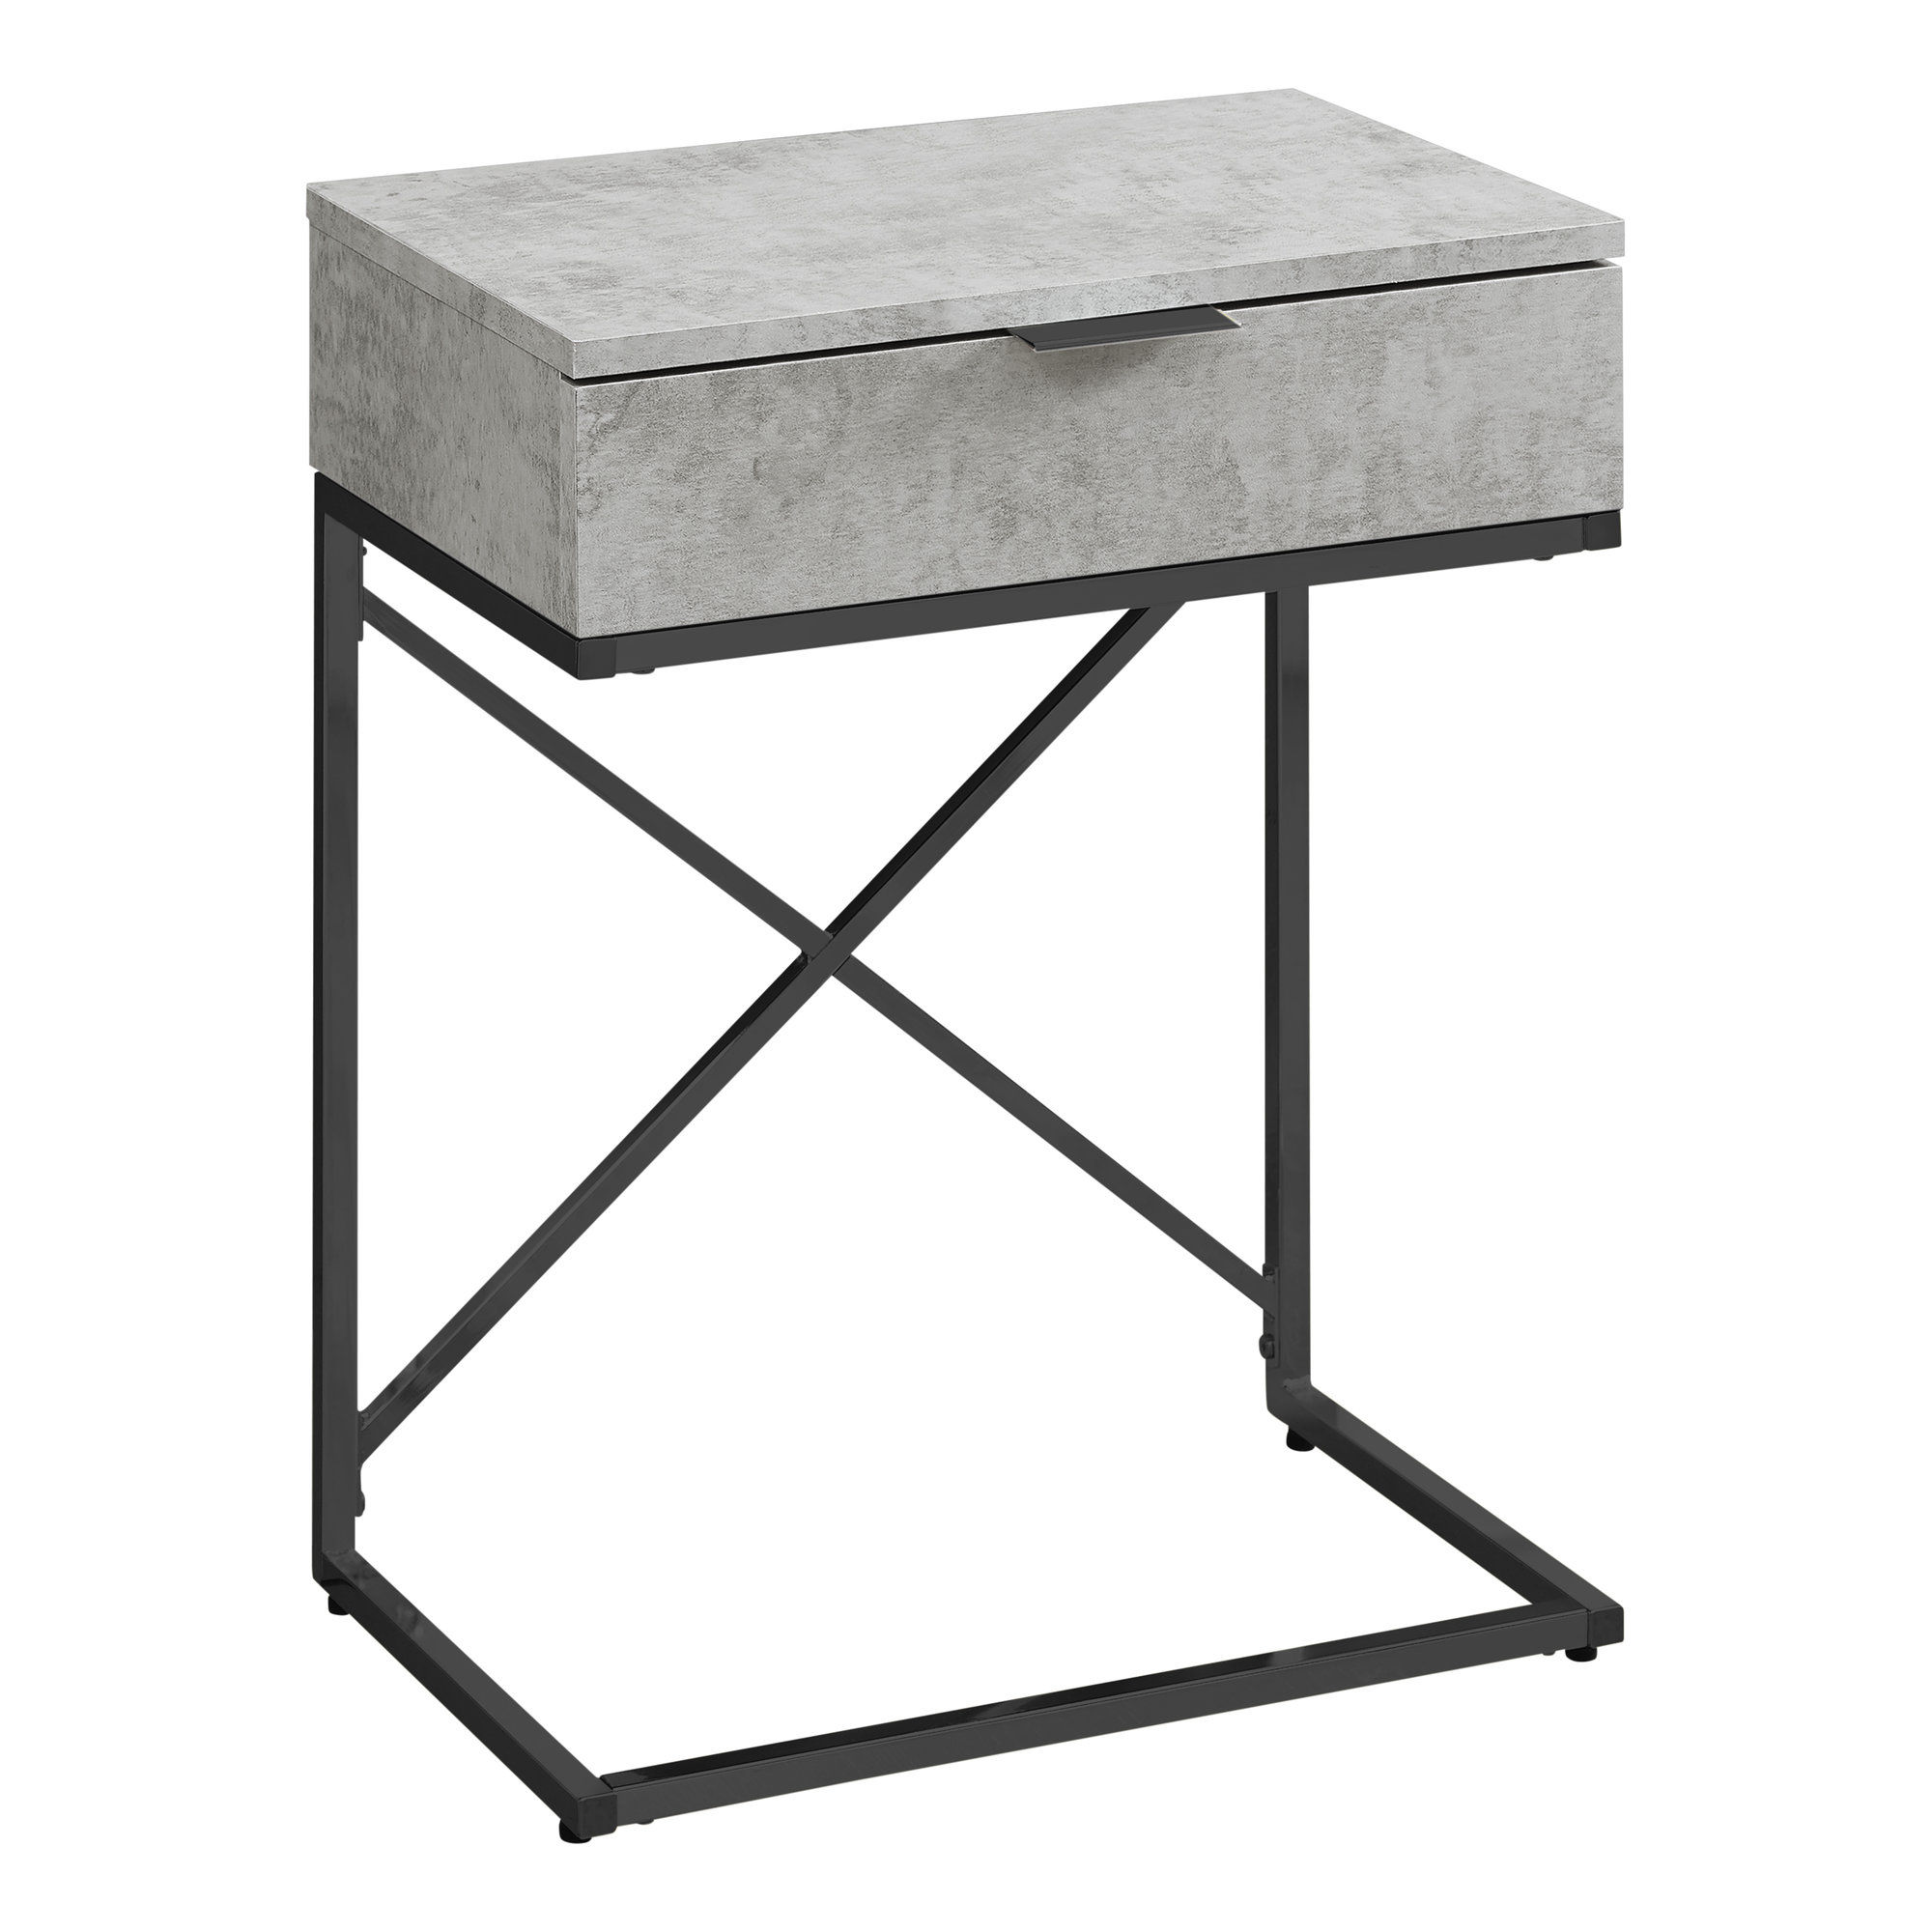 monarch specialties grey contemporary inch accent table the mnc click enlarge small smoked glass coffee furniture edmonton outdoor couch bar height and chairs barnwood ott sofa